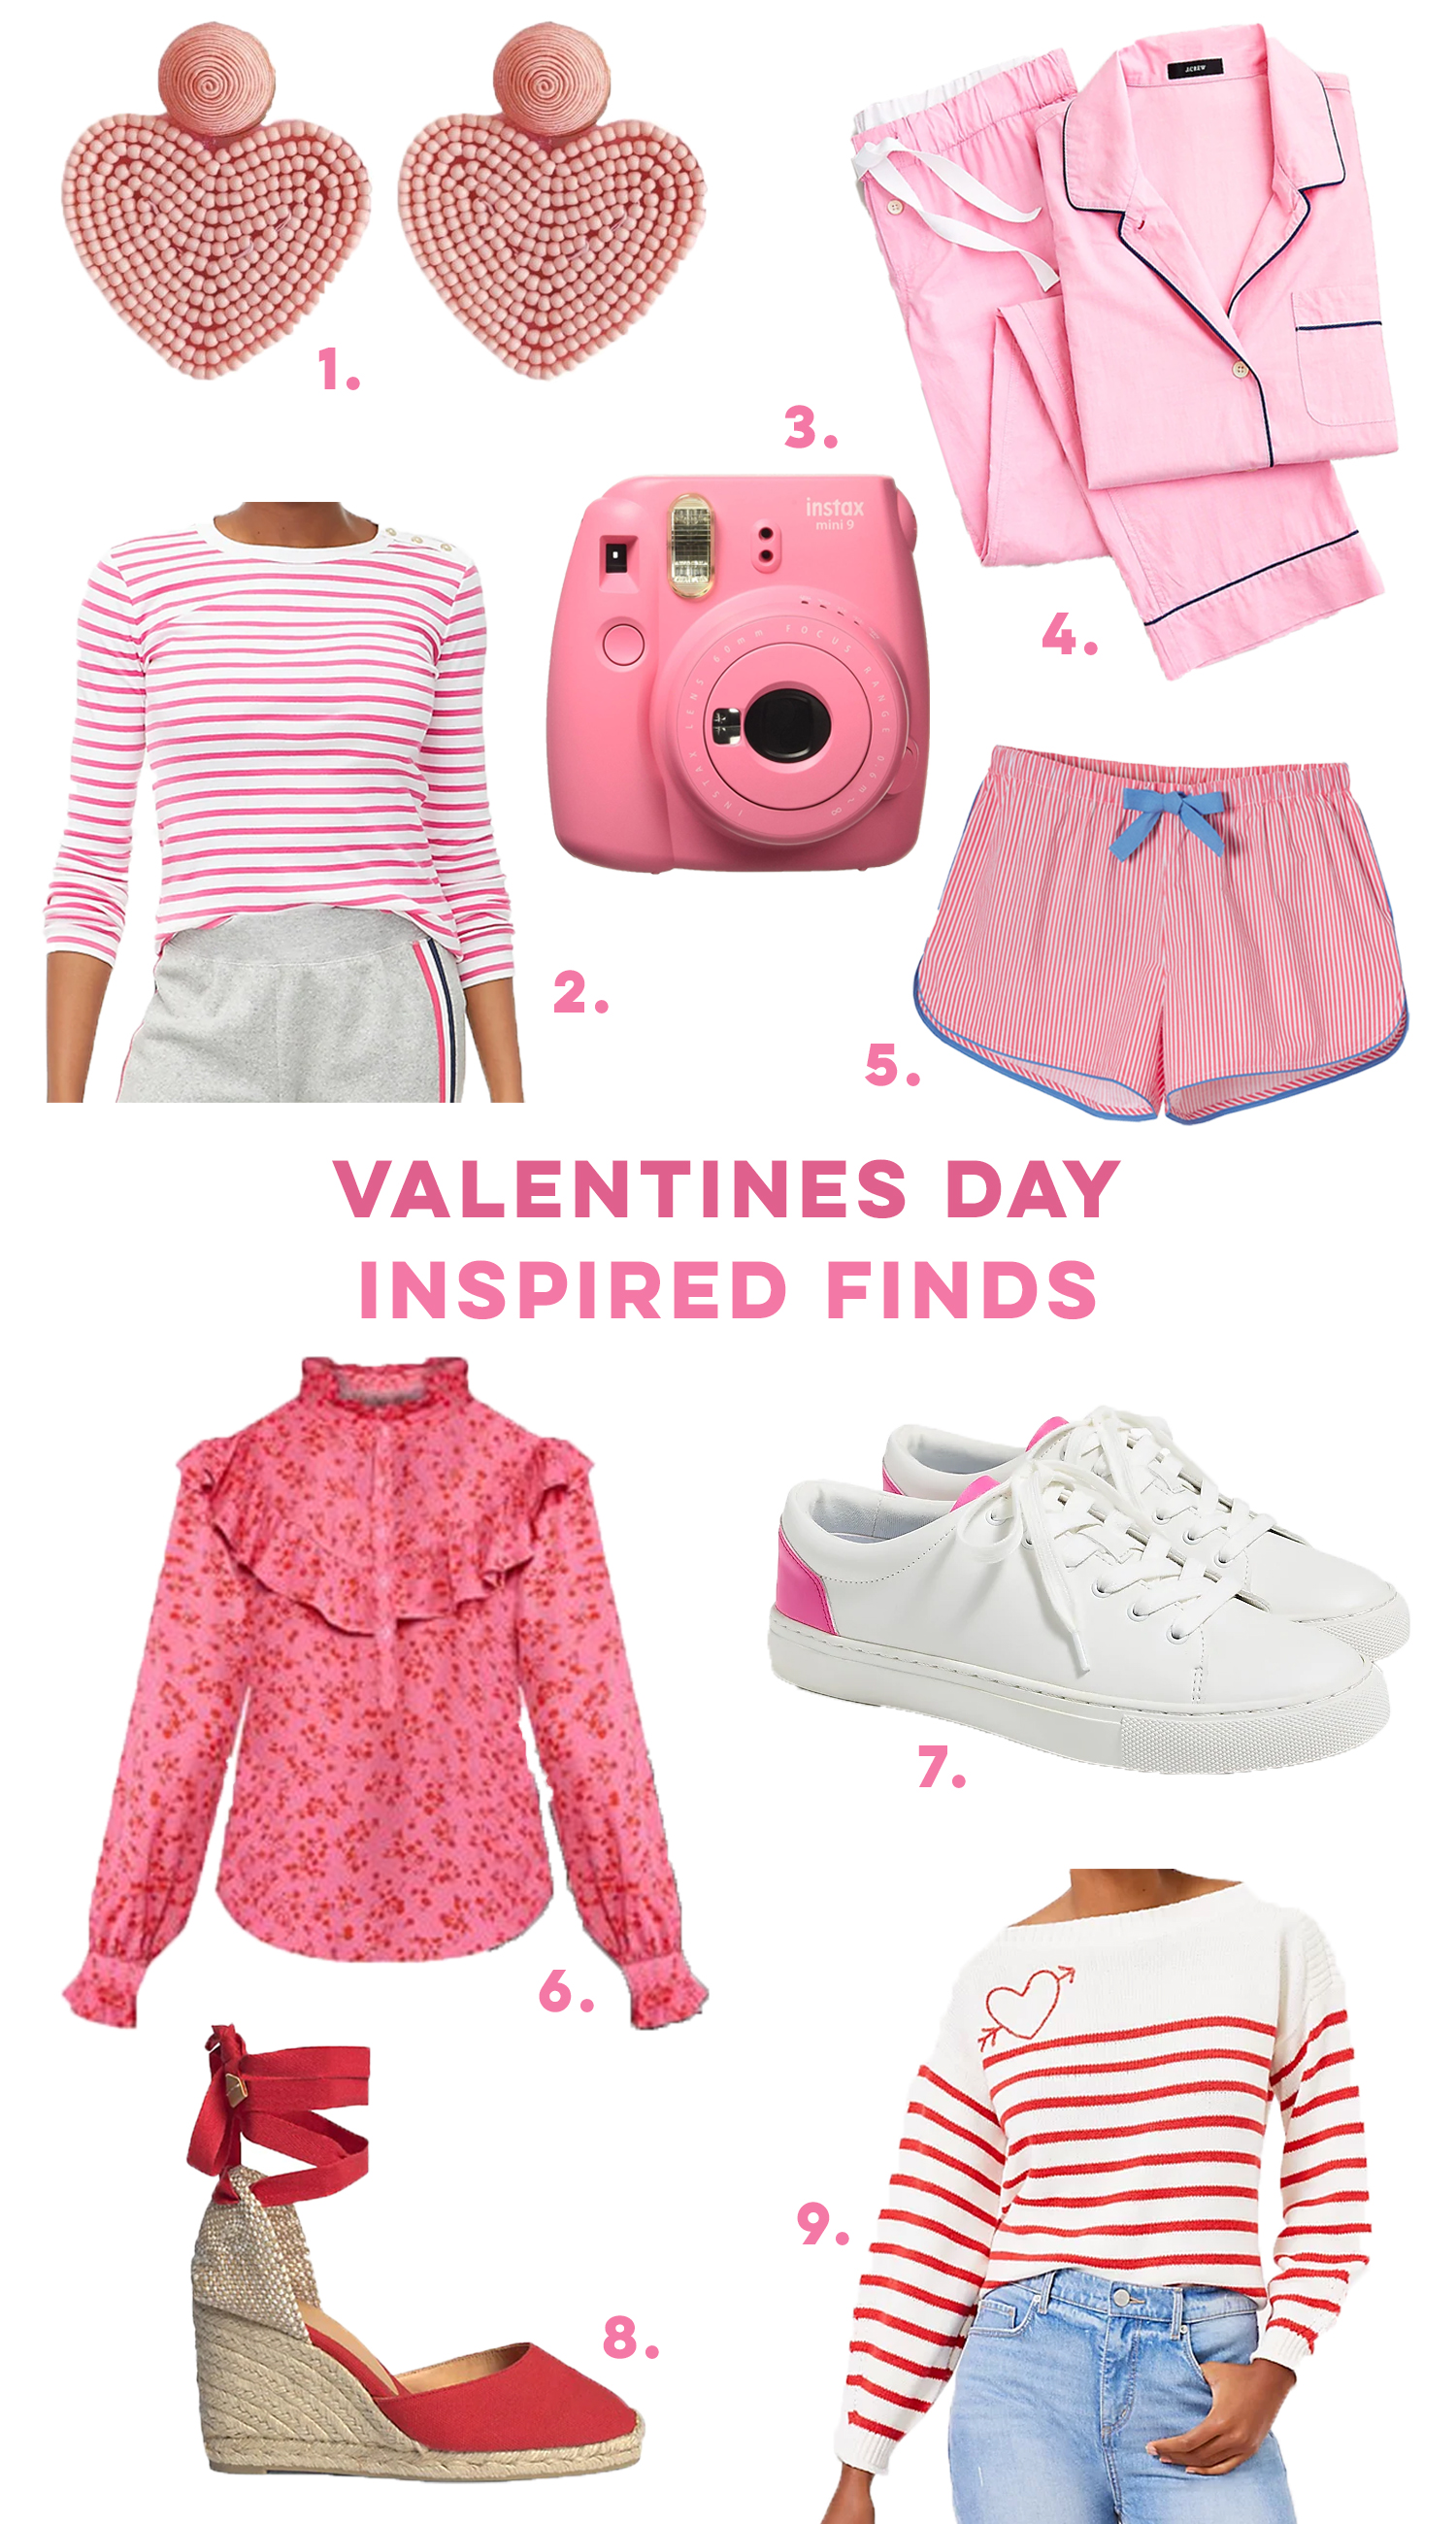 Valentine's Day Inspired Finds